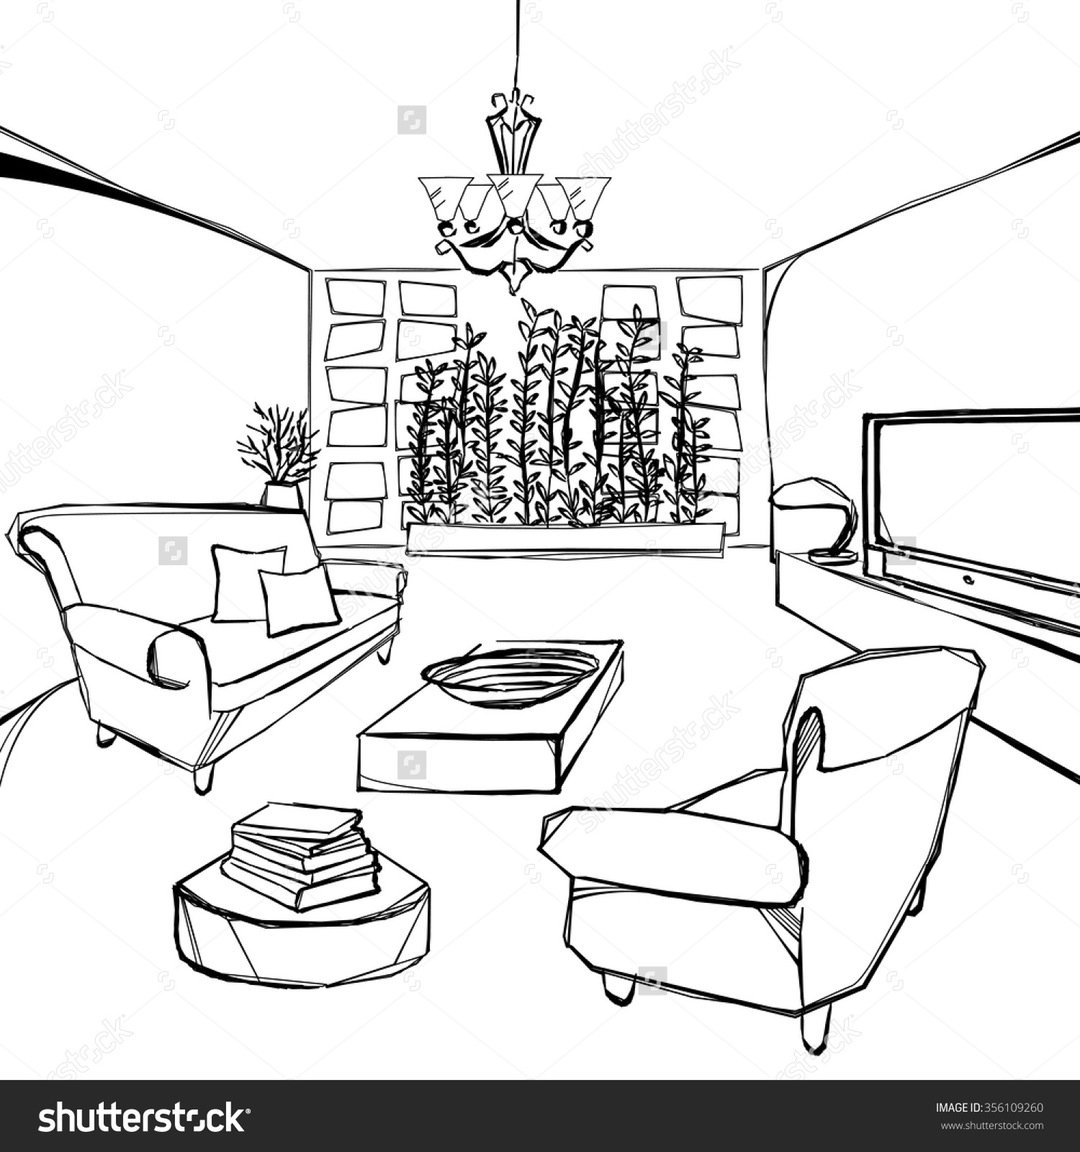 1080x1152 Dining Room Hand Drawing Come With Sketch And Images In Beautiful